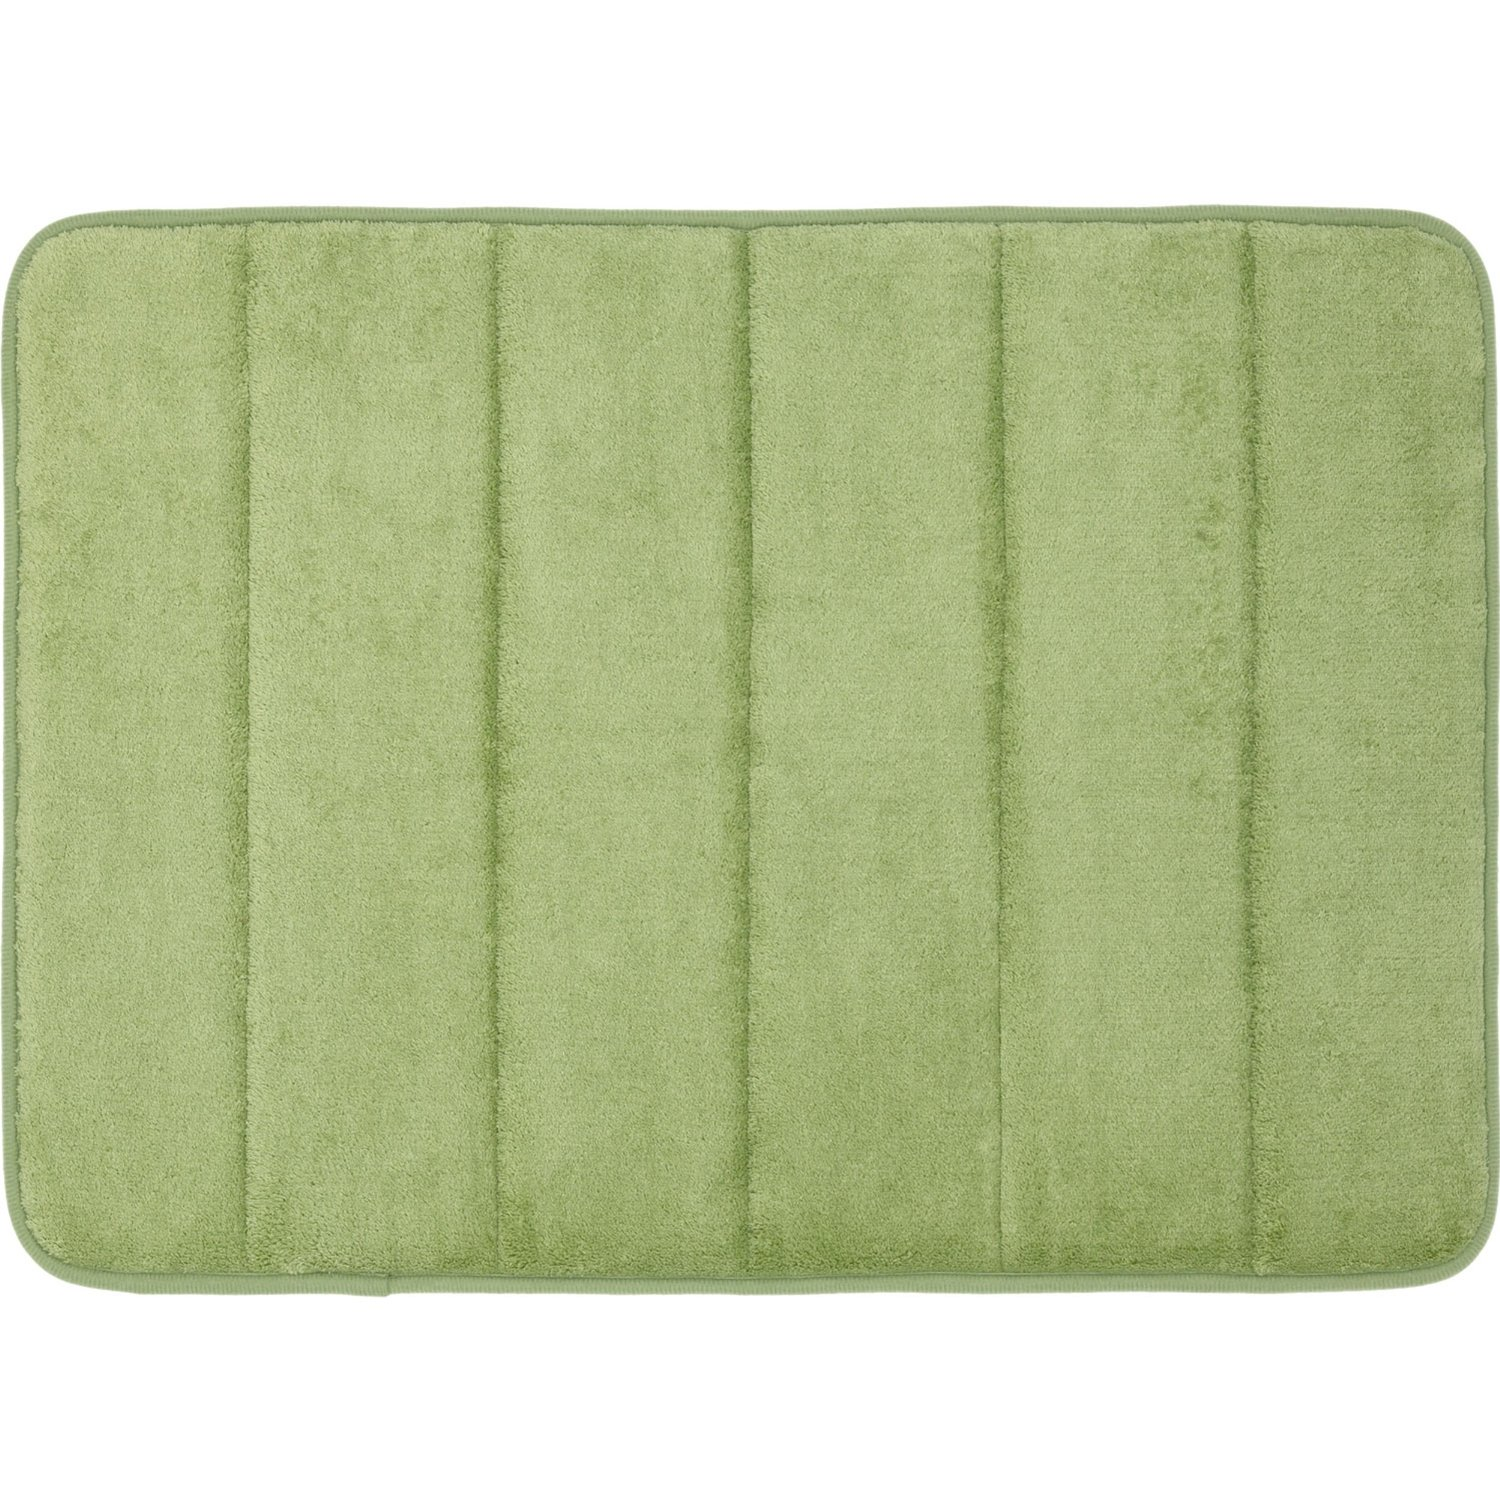 luxury green long bath mat with runner set